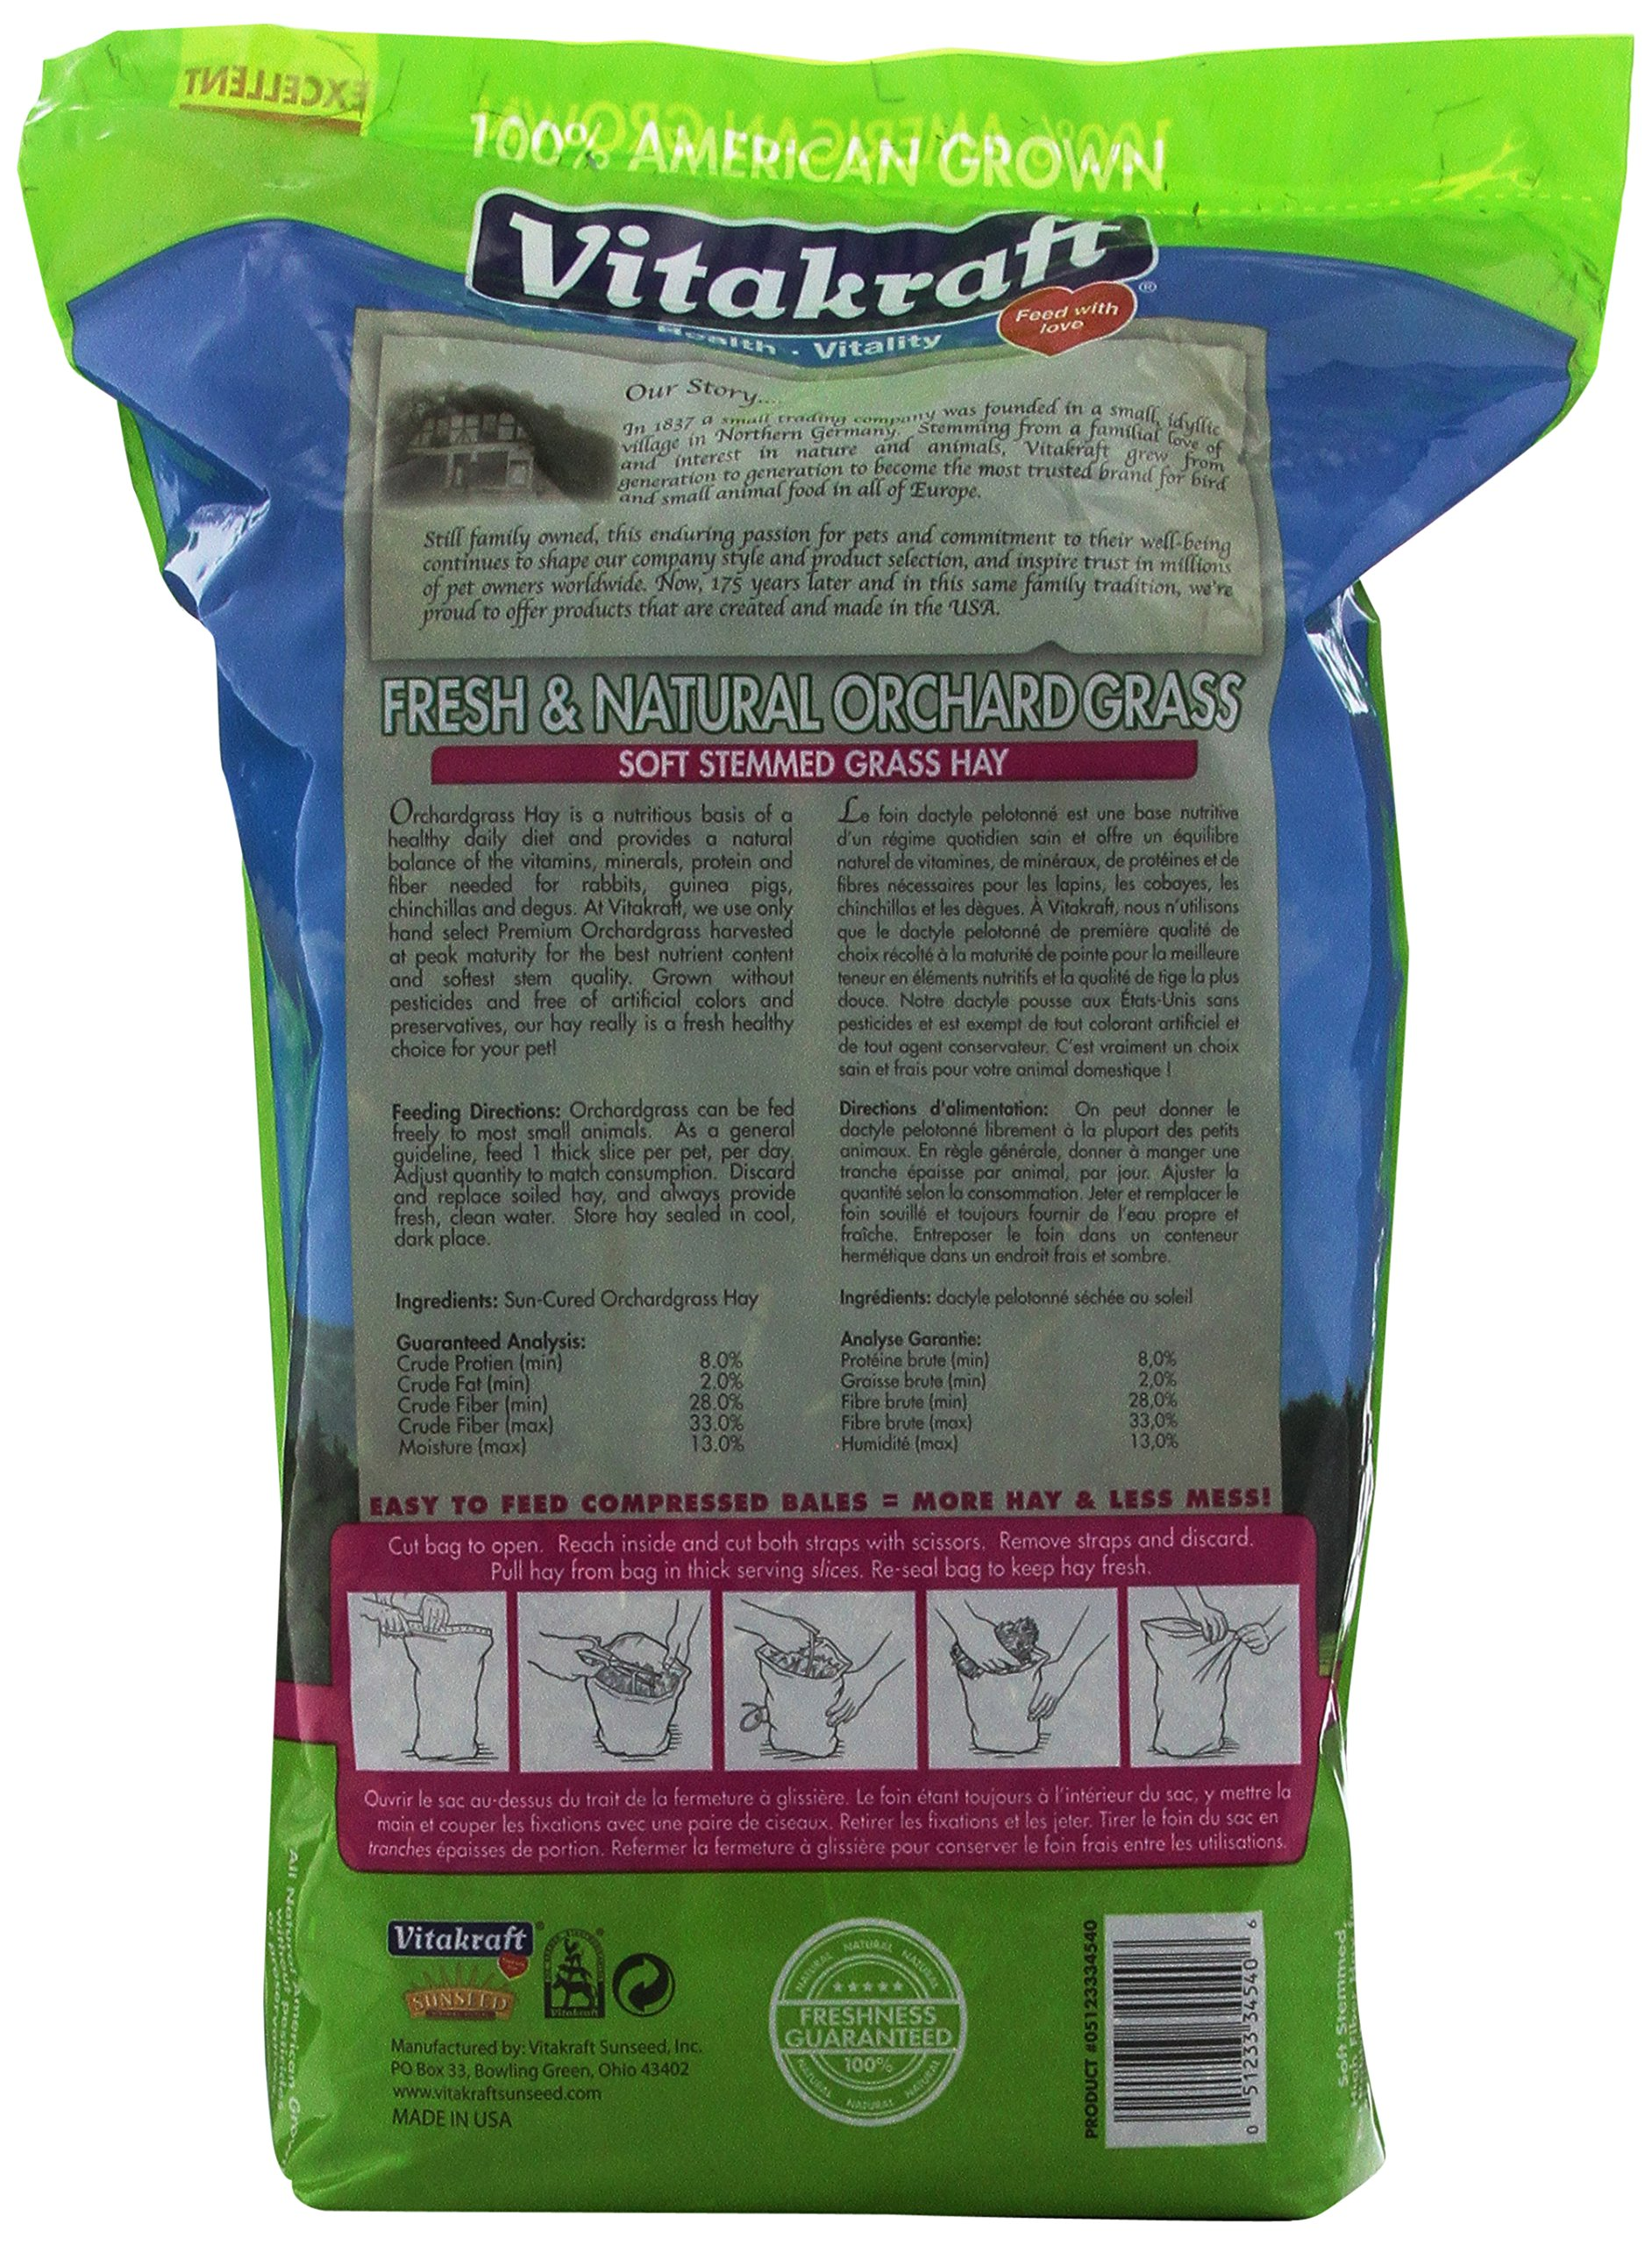 Vitakraft Orchard Grass, Premium Soft Stemmed Hay, 100% American Grown, 28 Ounce Resealable Bag by Vitakraft (Image #4)